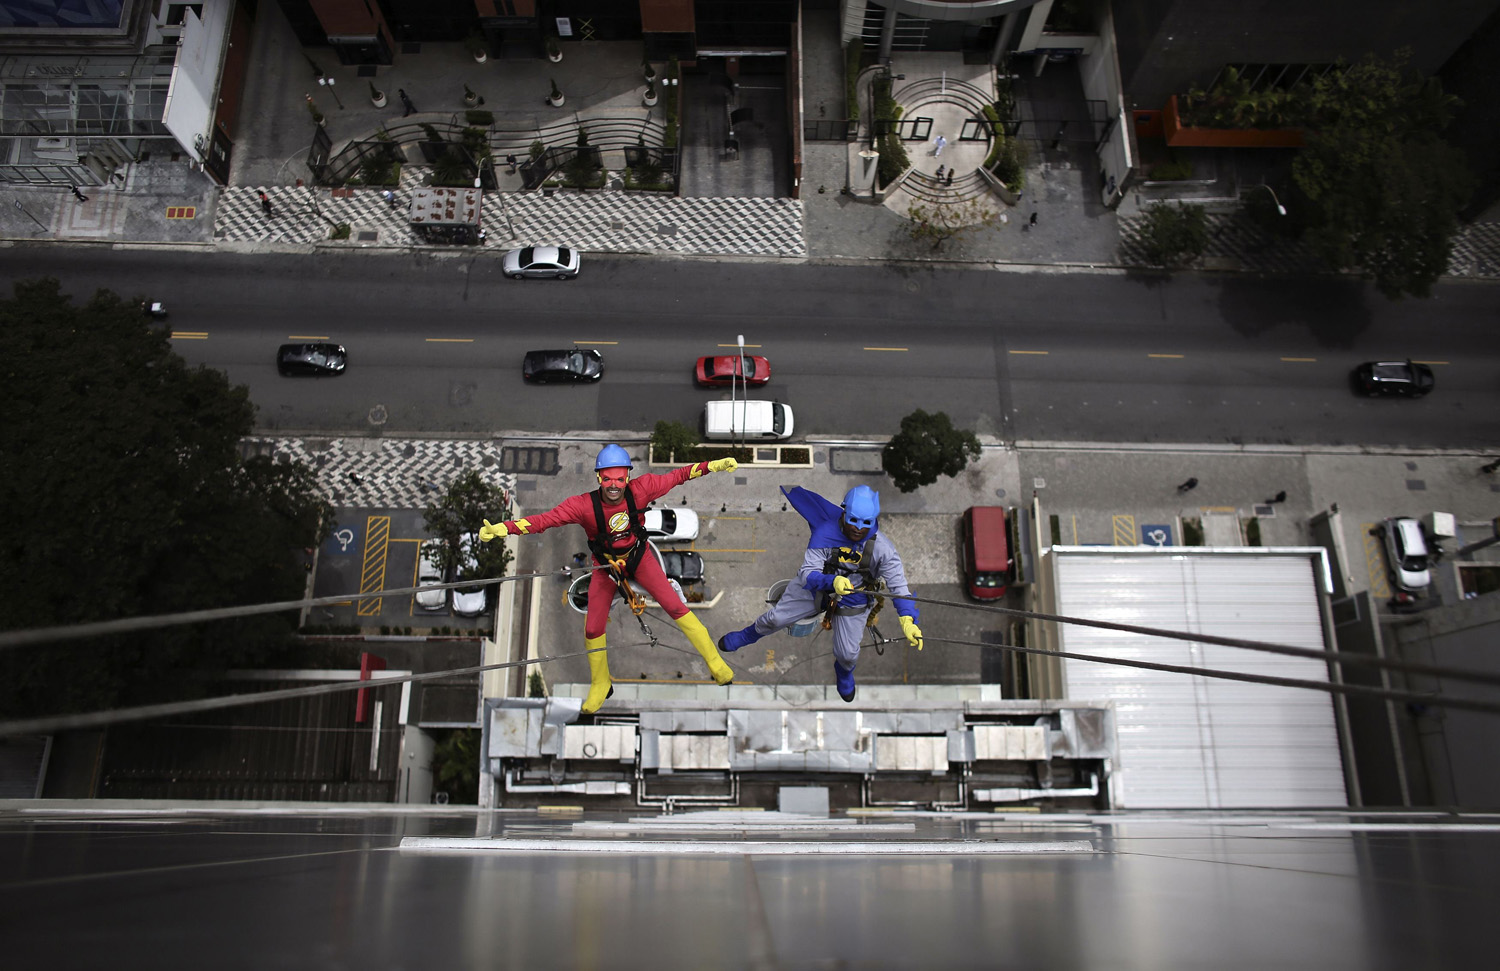 Men dressed as comic book heroes Batman and the Flash gesture as they prepare to clean the glass facade of Hospital Infantil Sabara before meeting with patients of the children's hospital in Sao Paulo on Oct. 7, 2014.